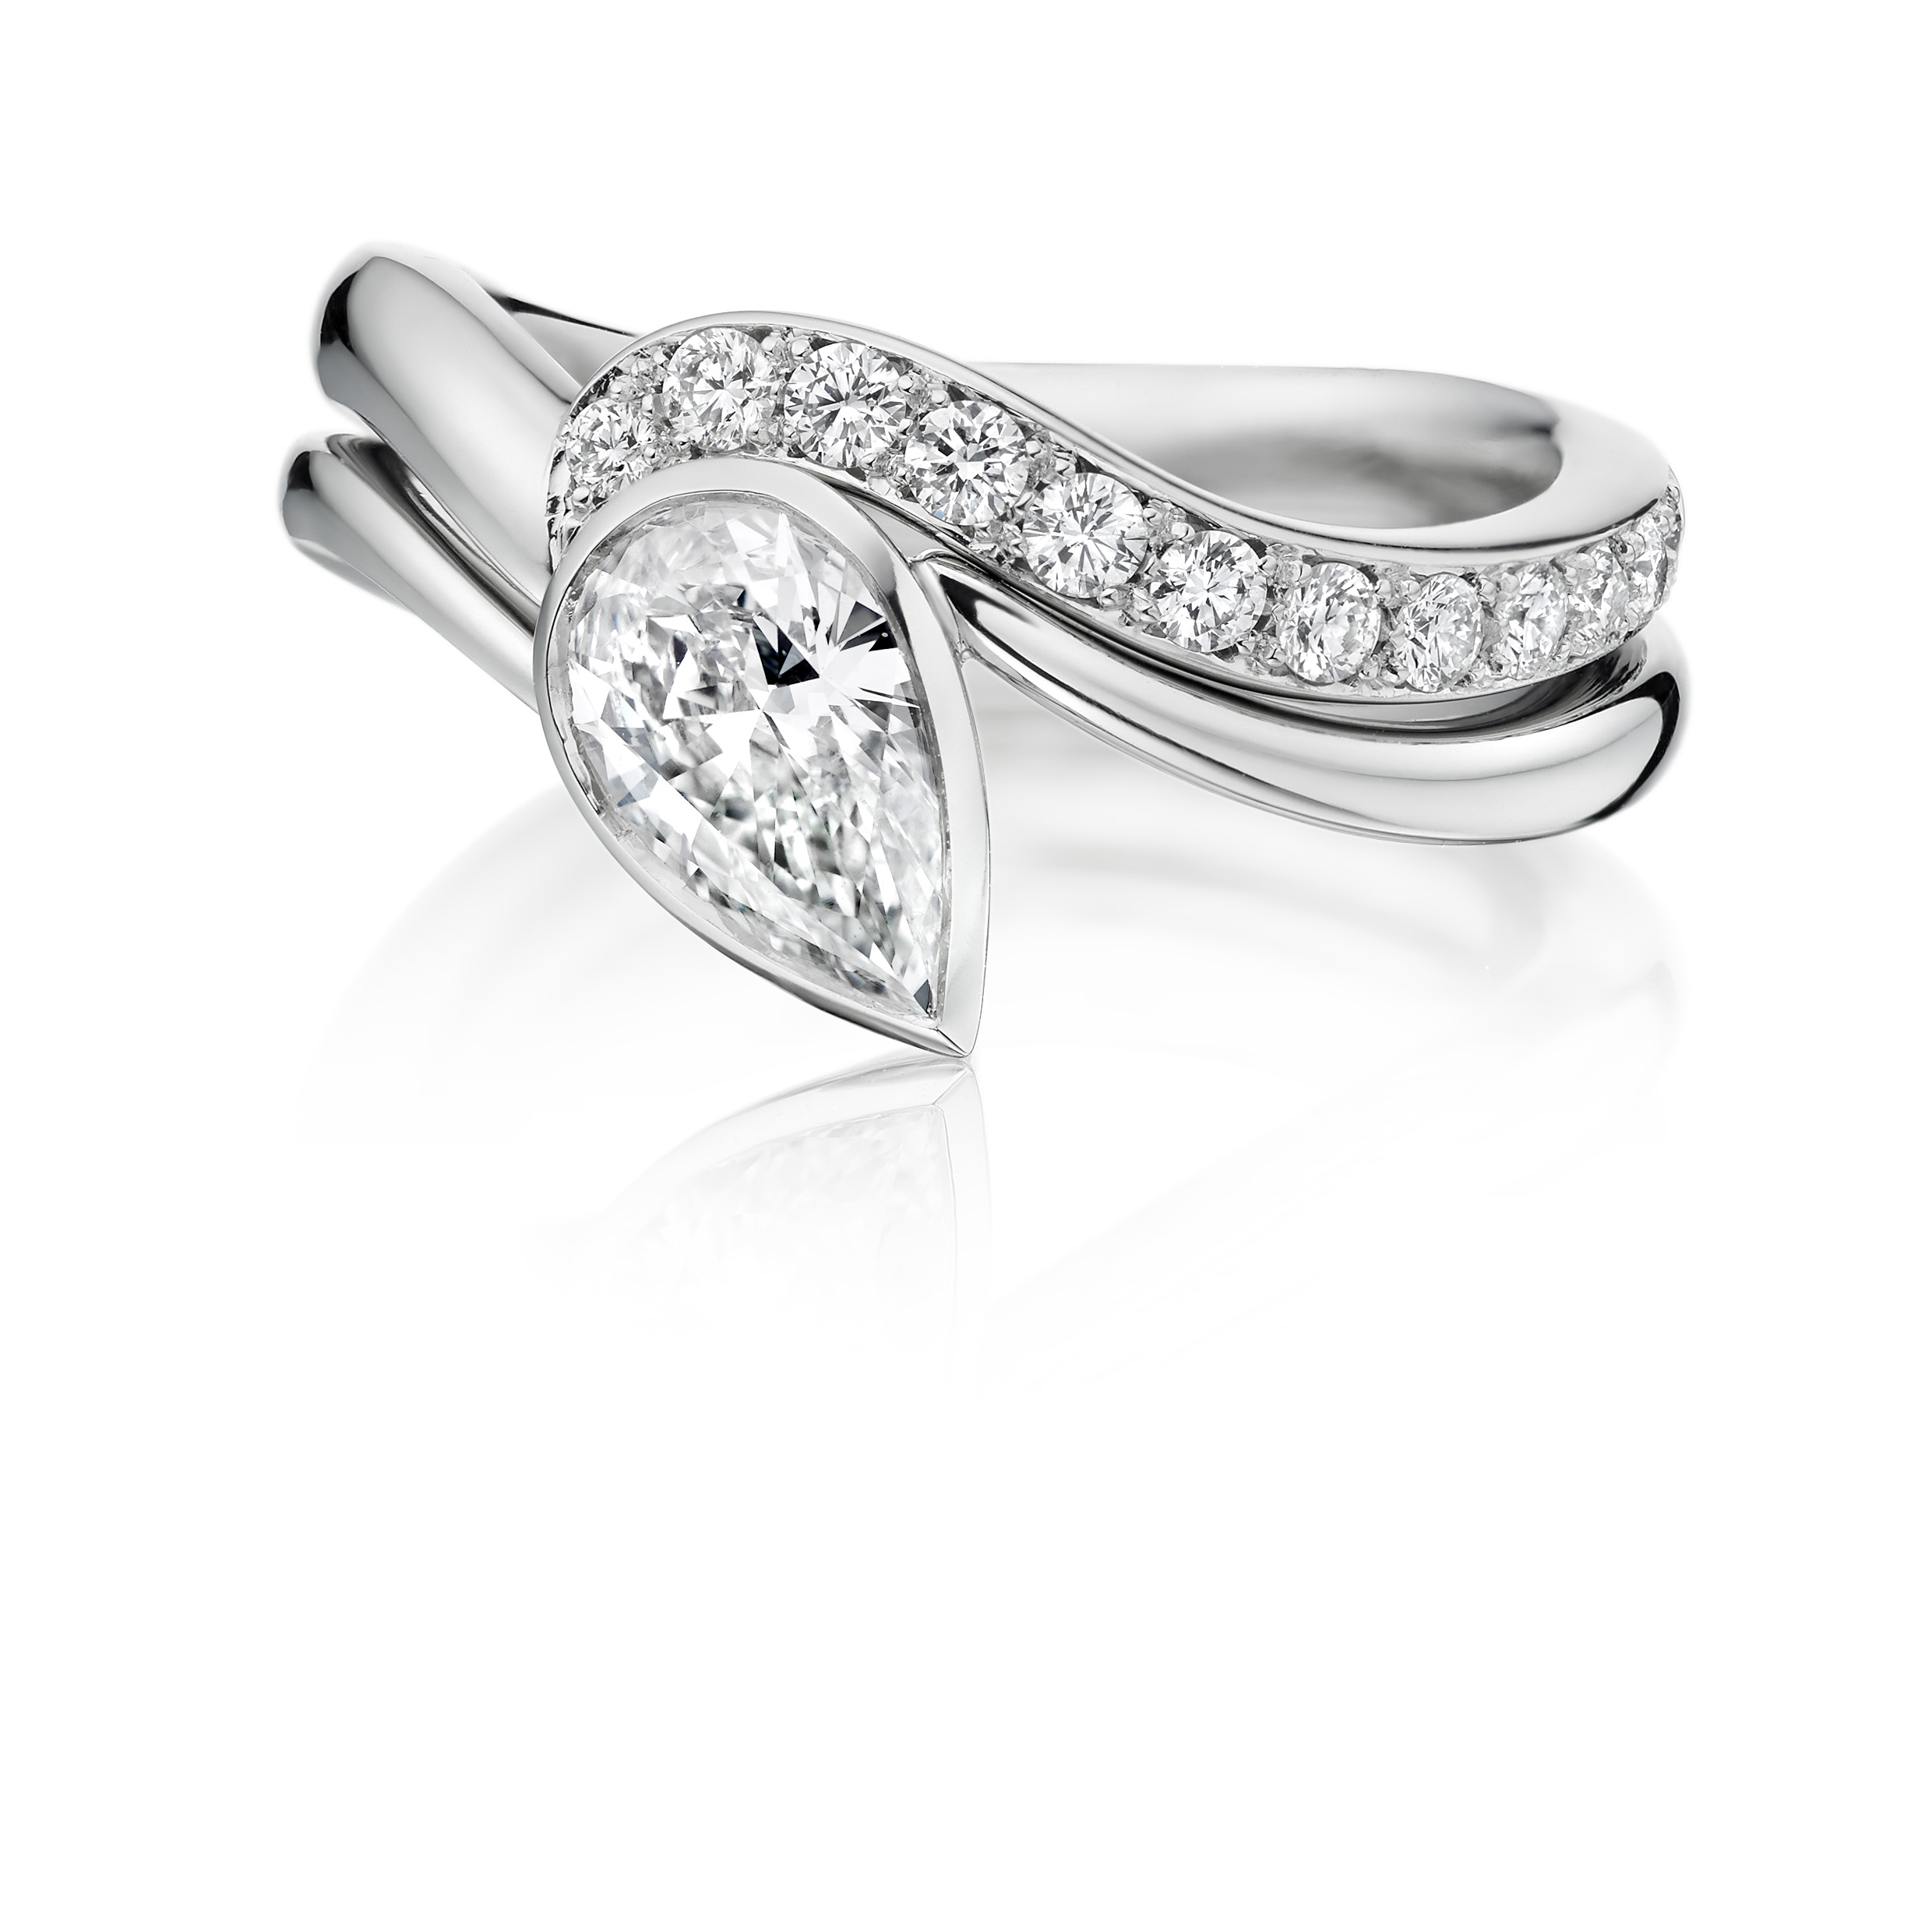 The Wave Ring with matching diamond set band - OA270 wed OA269 wave